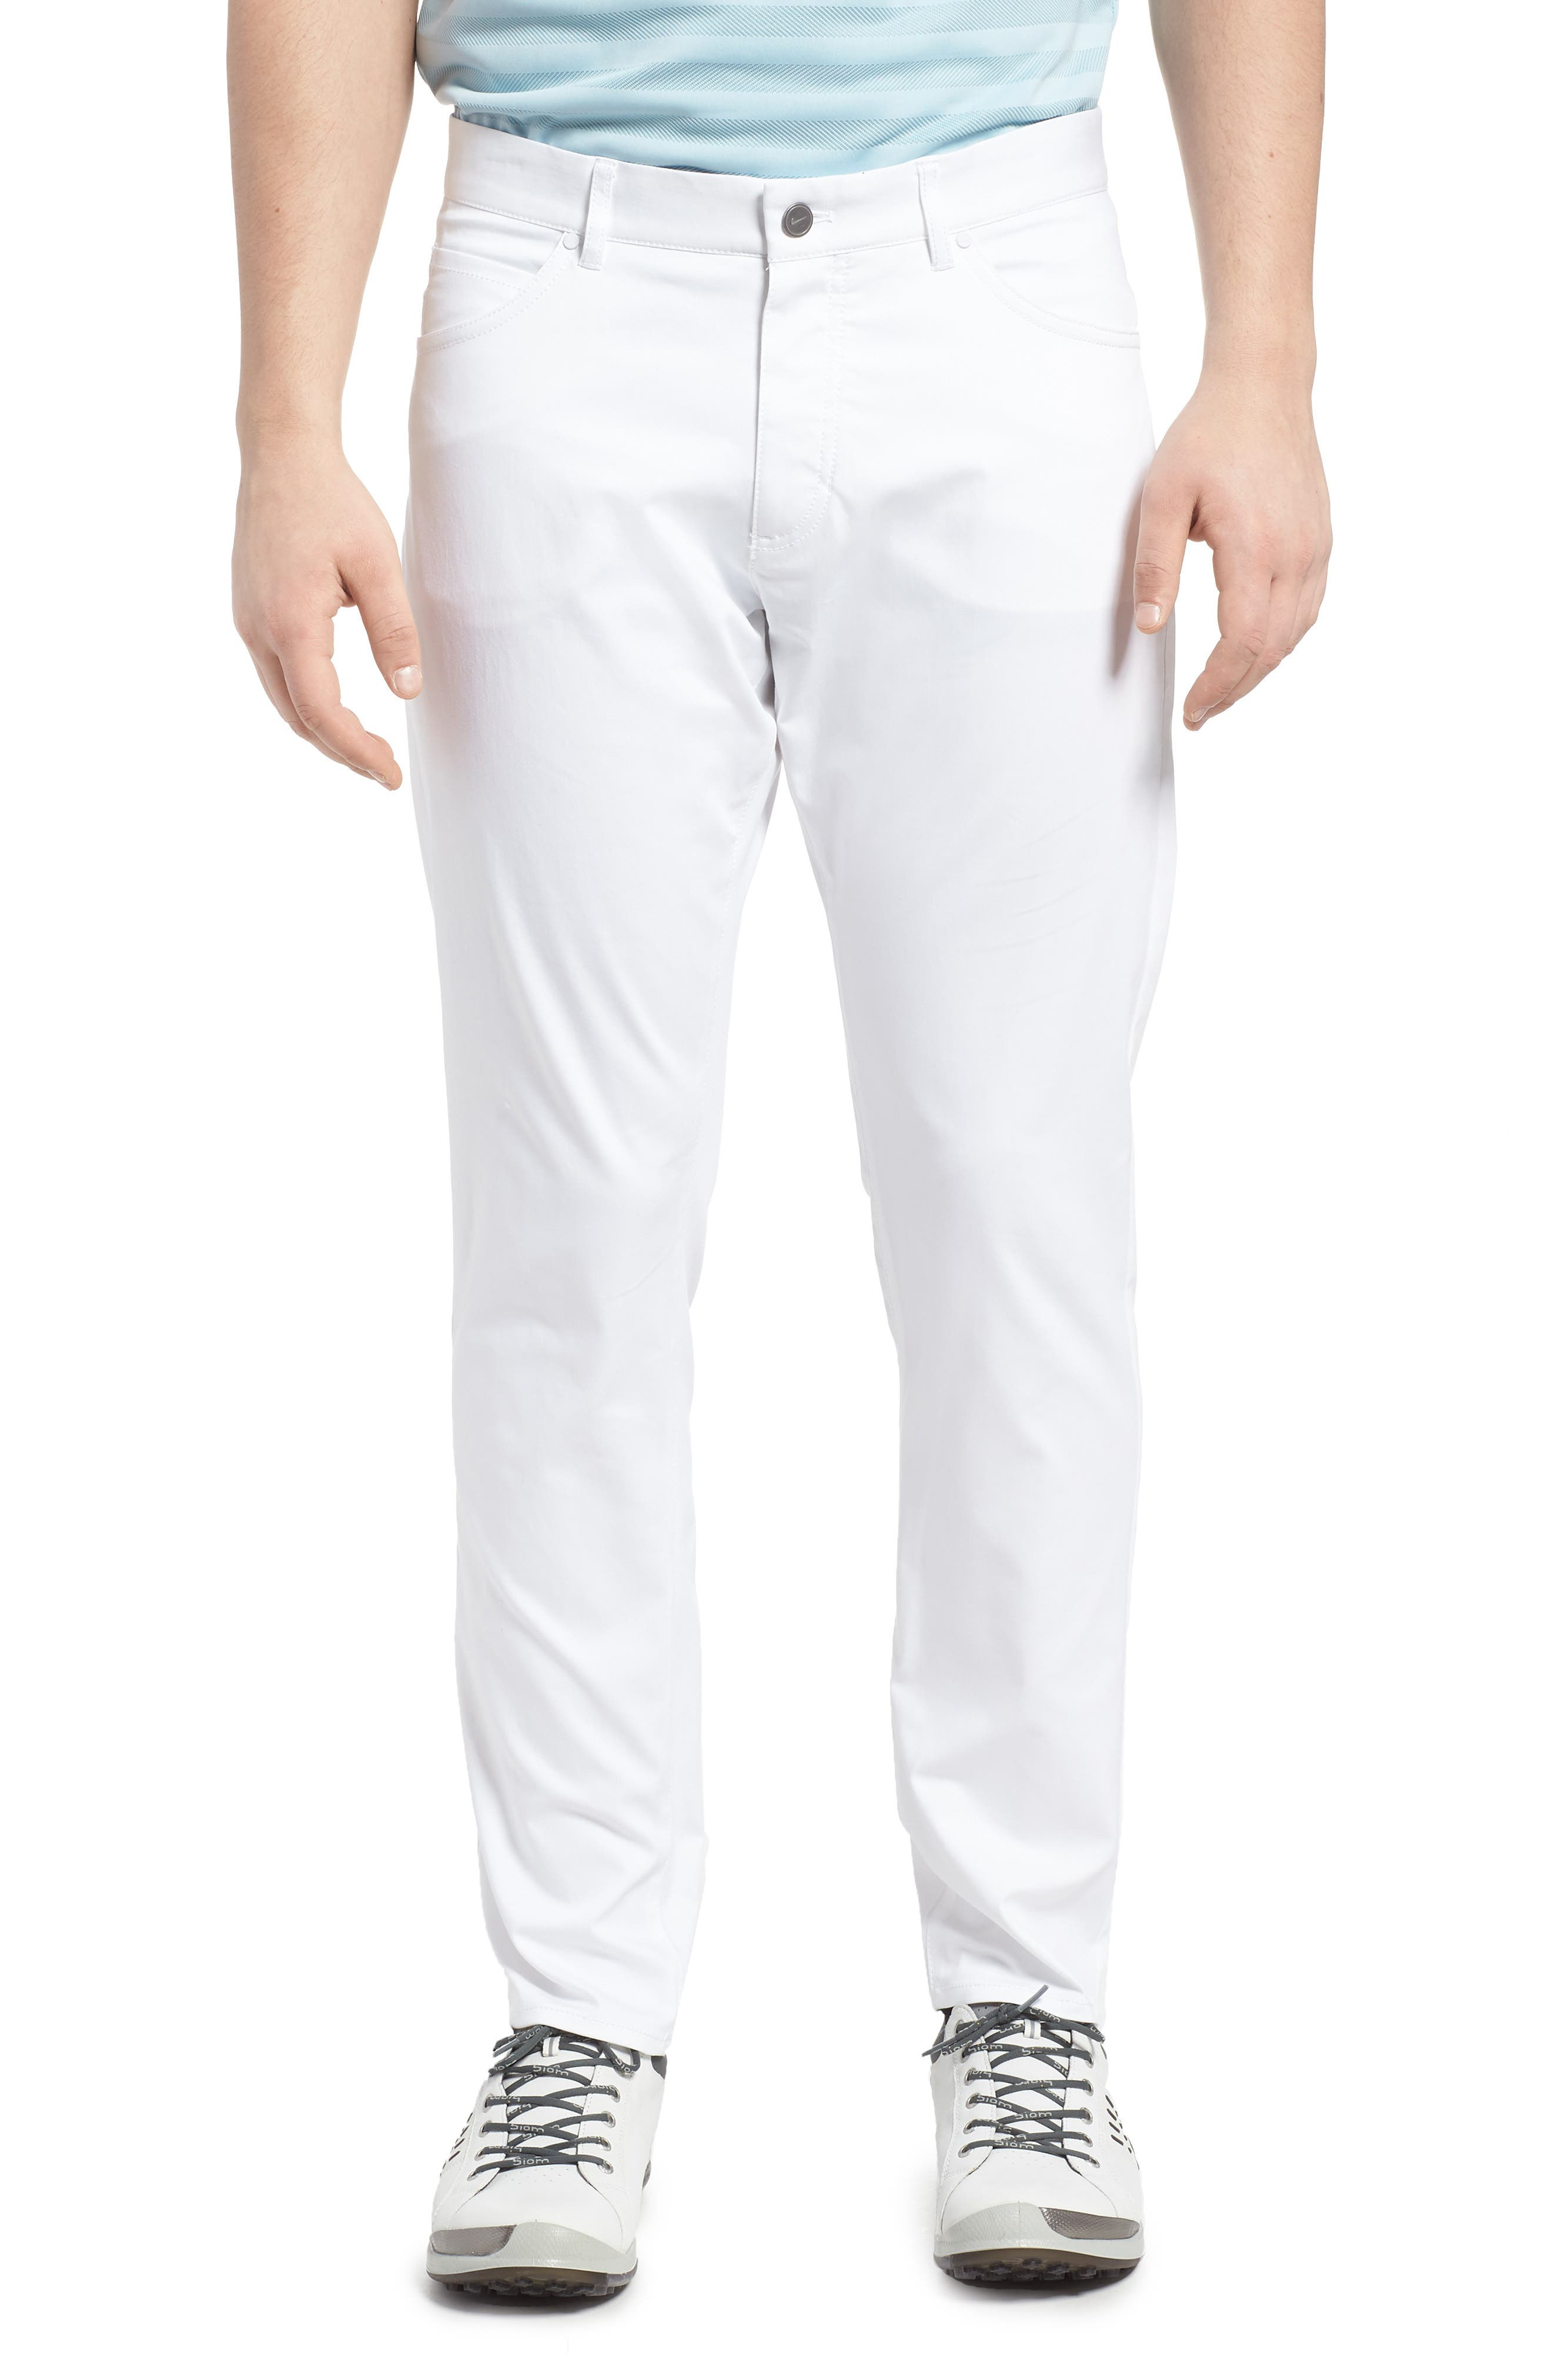 Dry Flex Slim Fit Golf Pants,                             Main thumbnail 1, color,                             White/ White